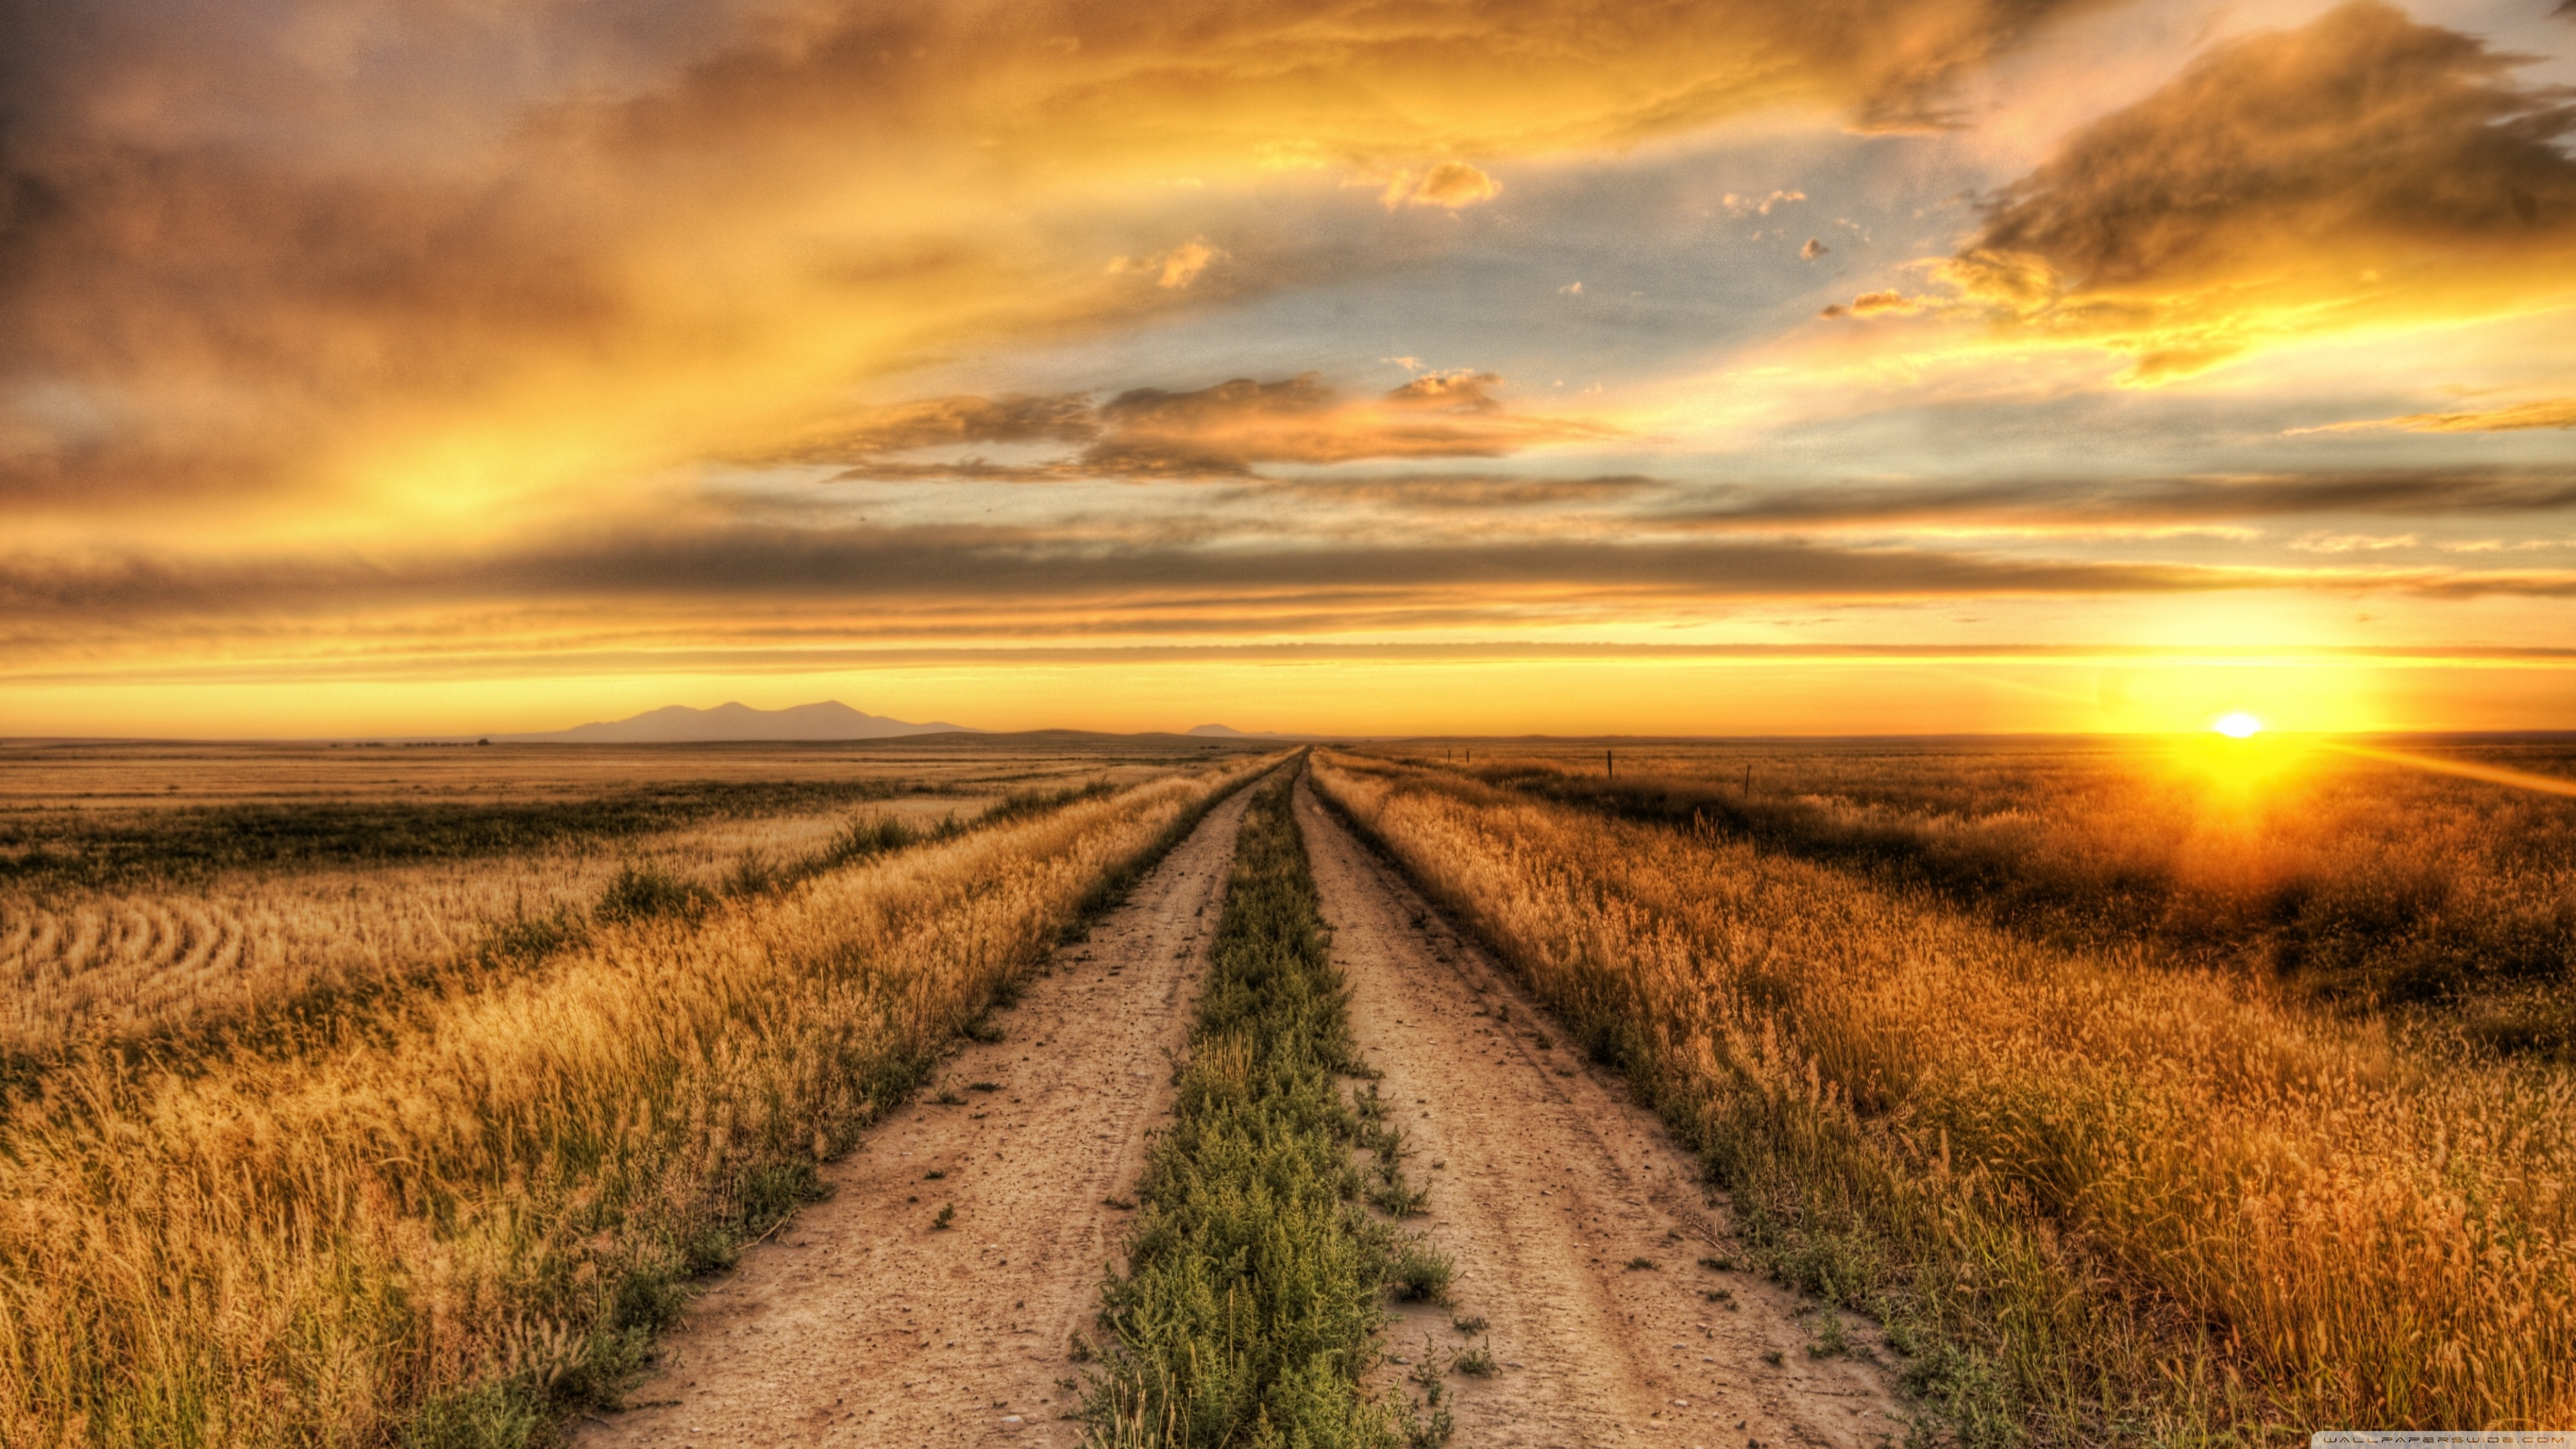 Country Sunset Wallpaper 5351